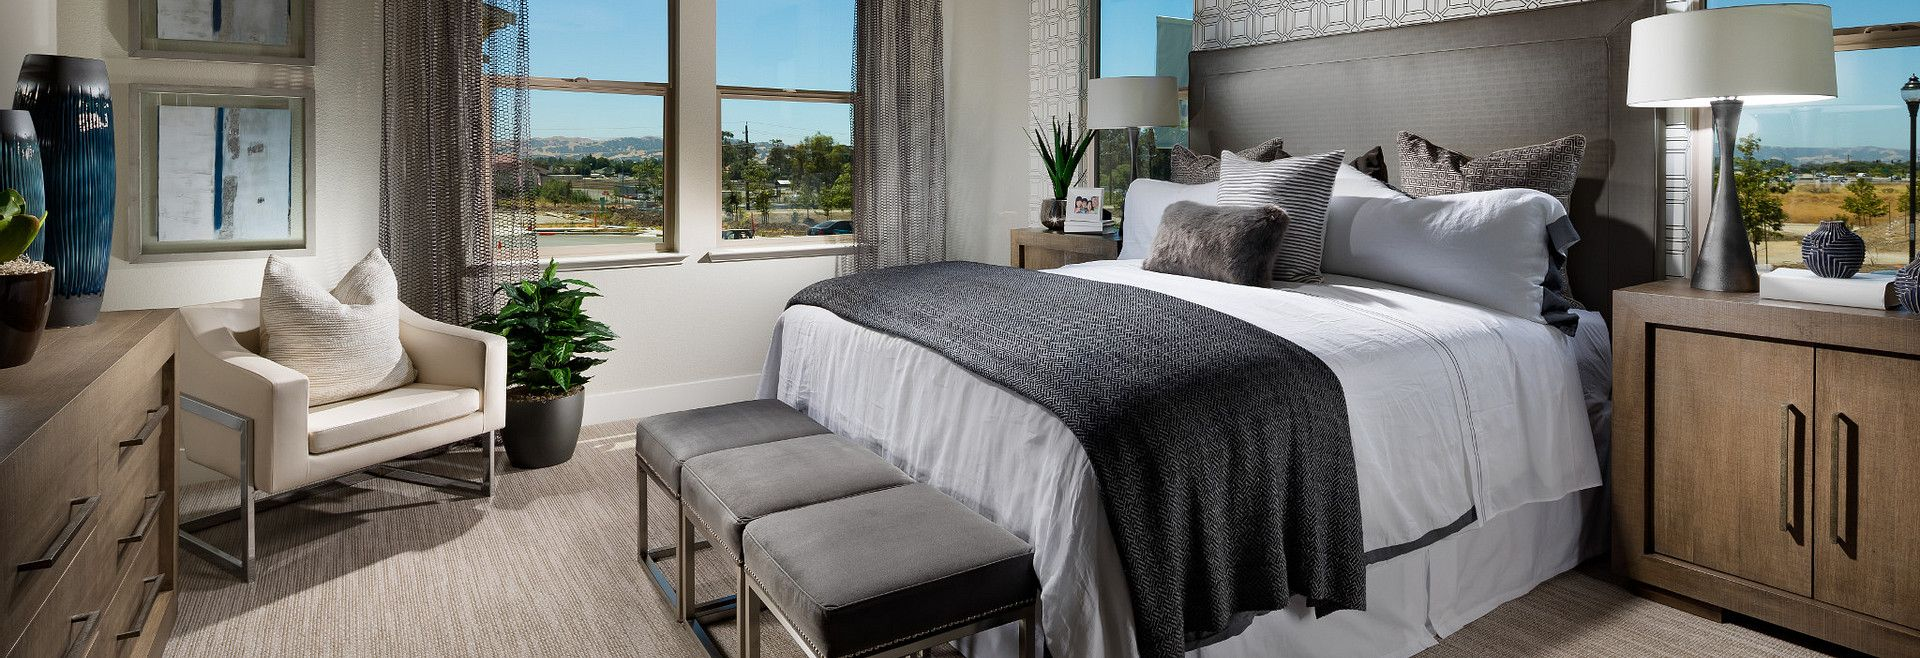 Bedroom featured in the Plan 3 By Shea Homes in Oakland-Alameda, CA